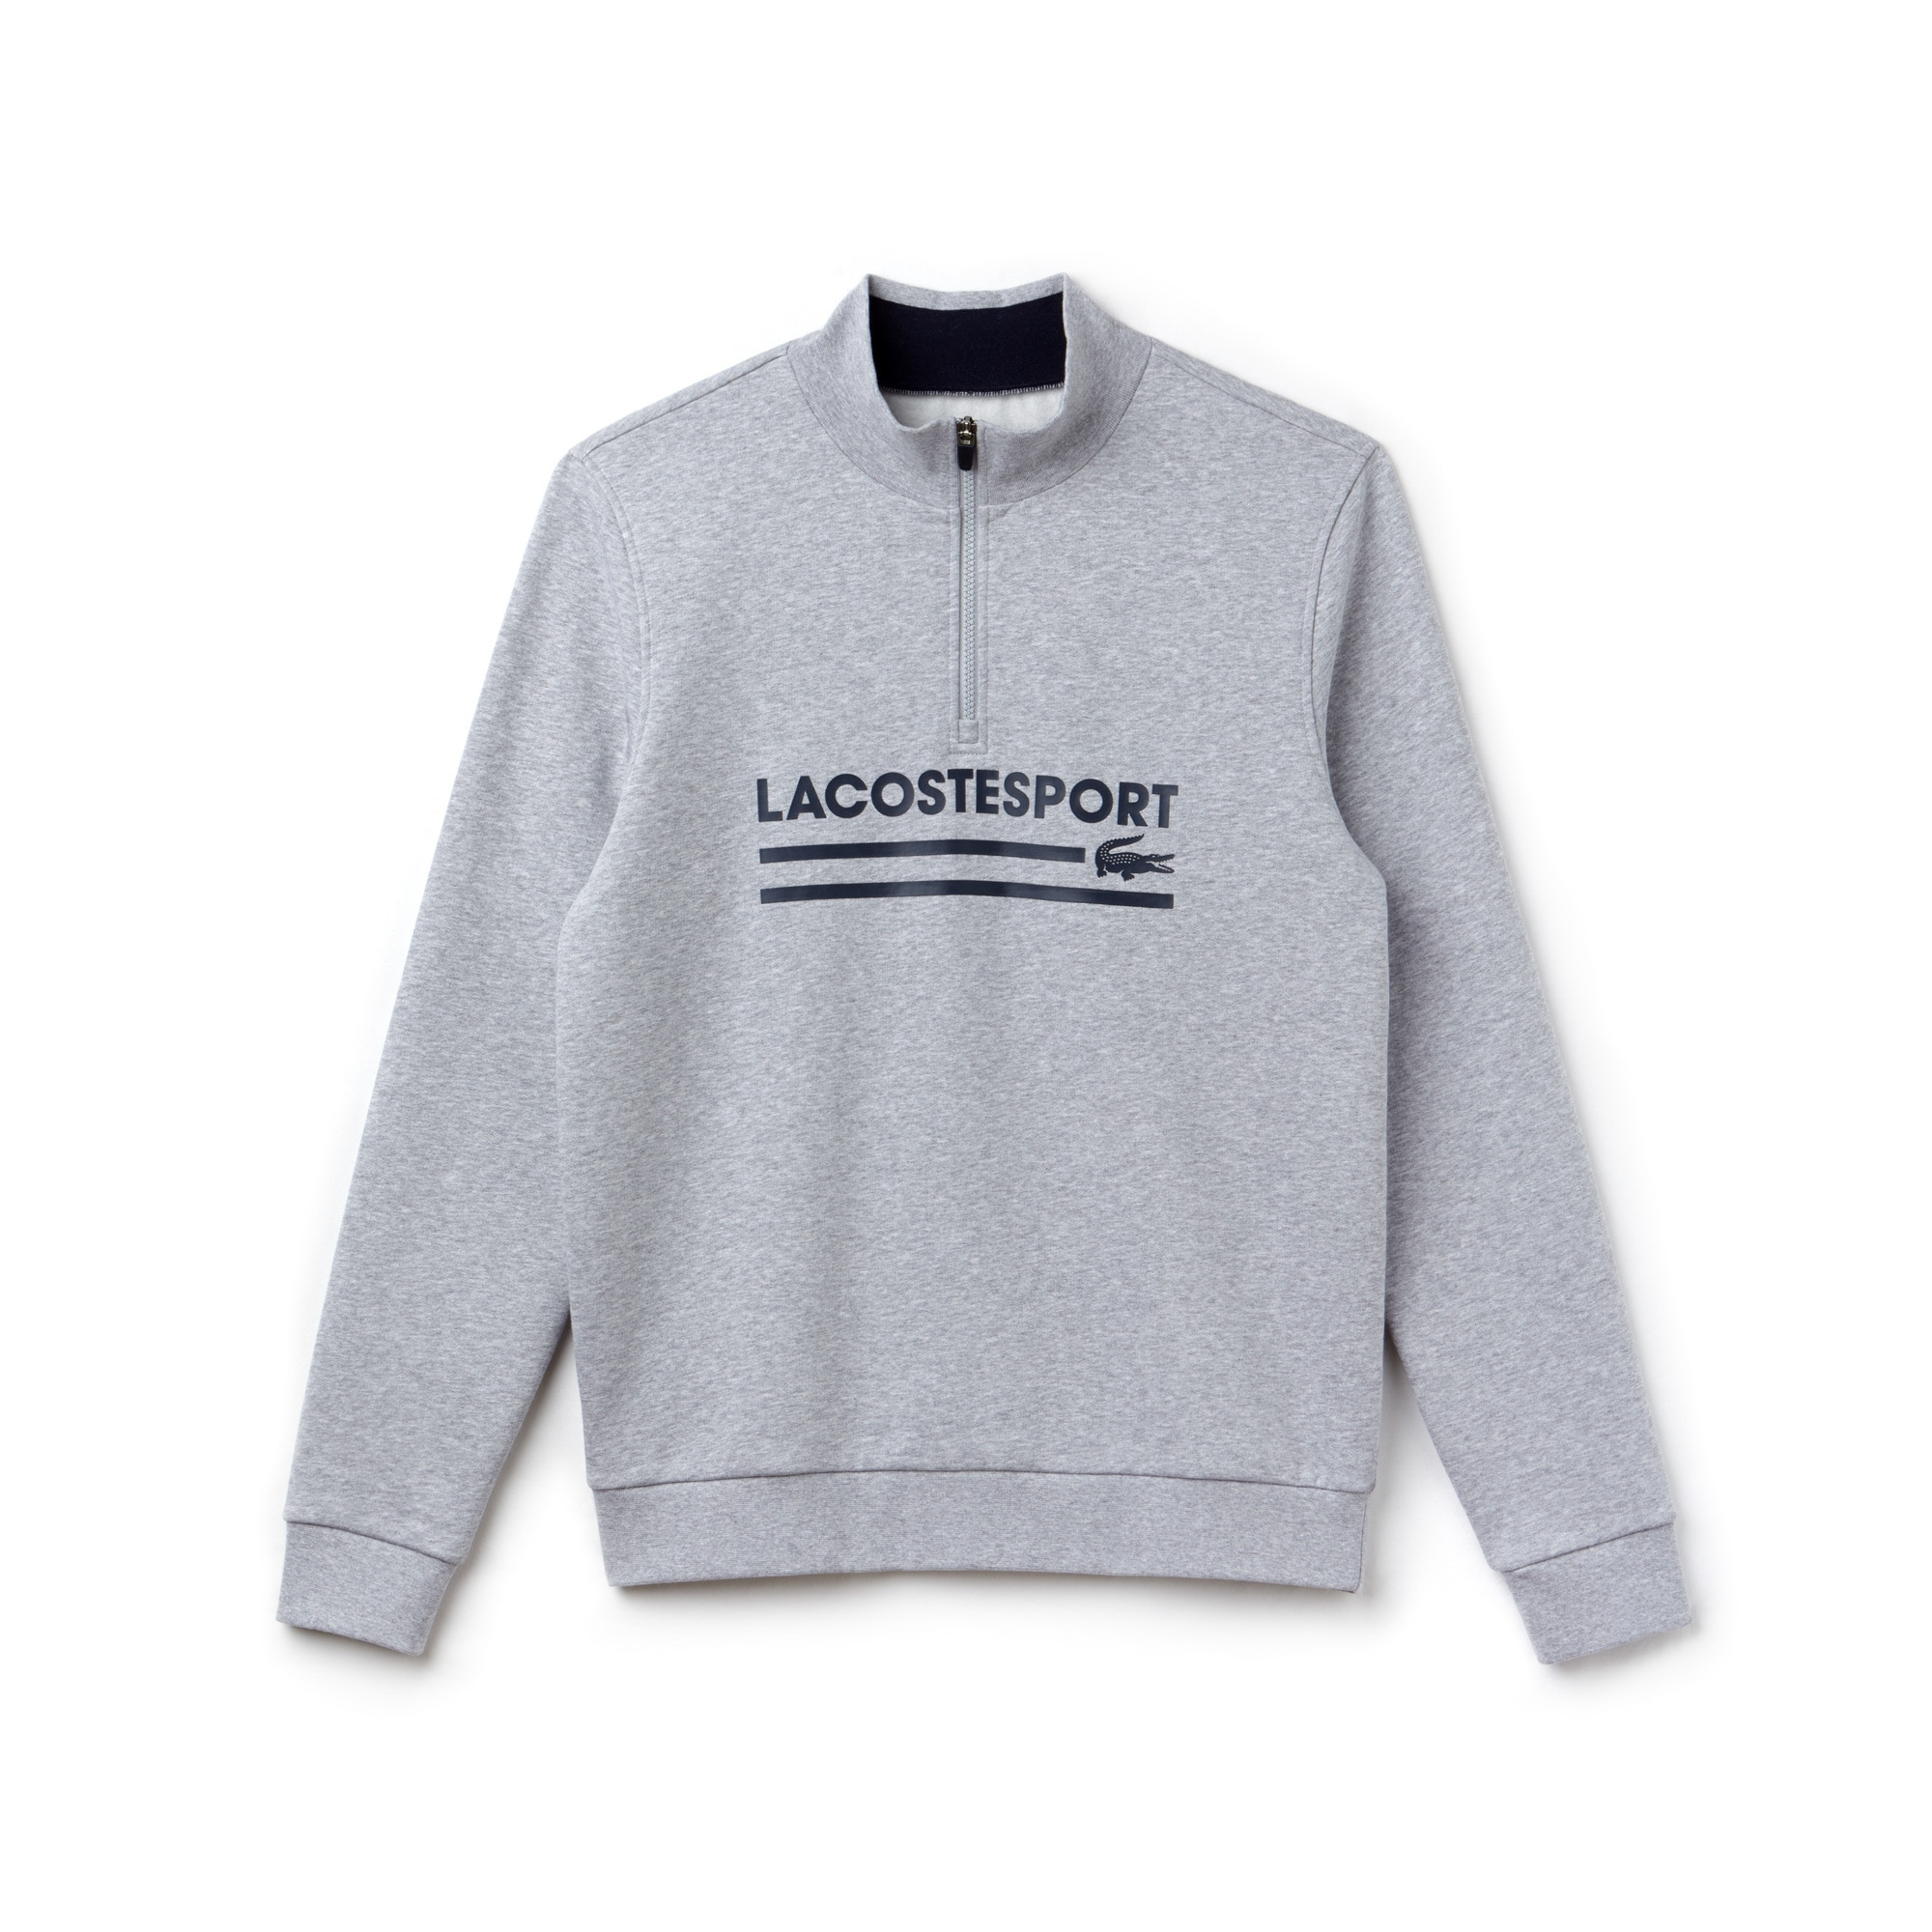 Men's Lacoste SPORT Zip Stand-Up Collar Fleece Tennis Sweatshirt